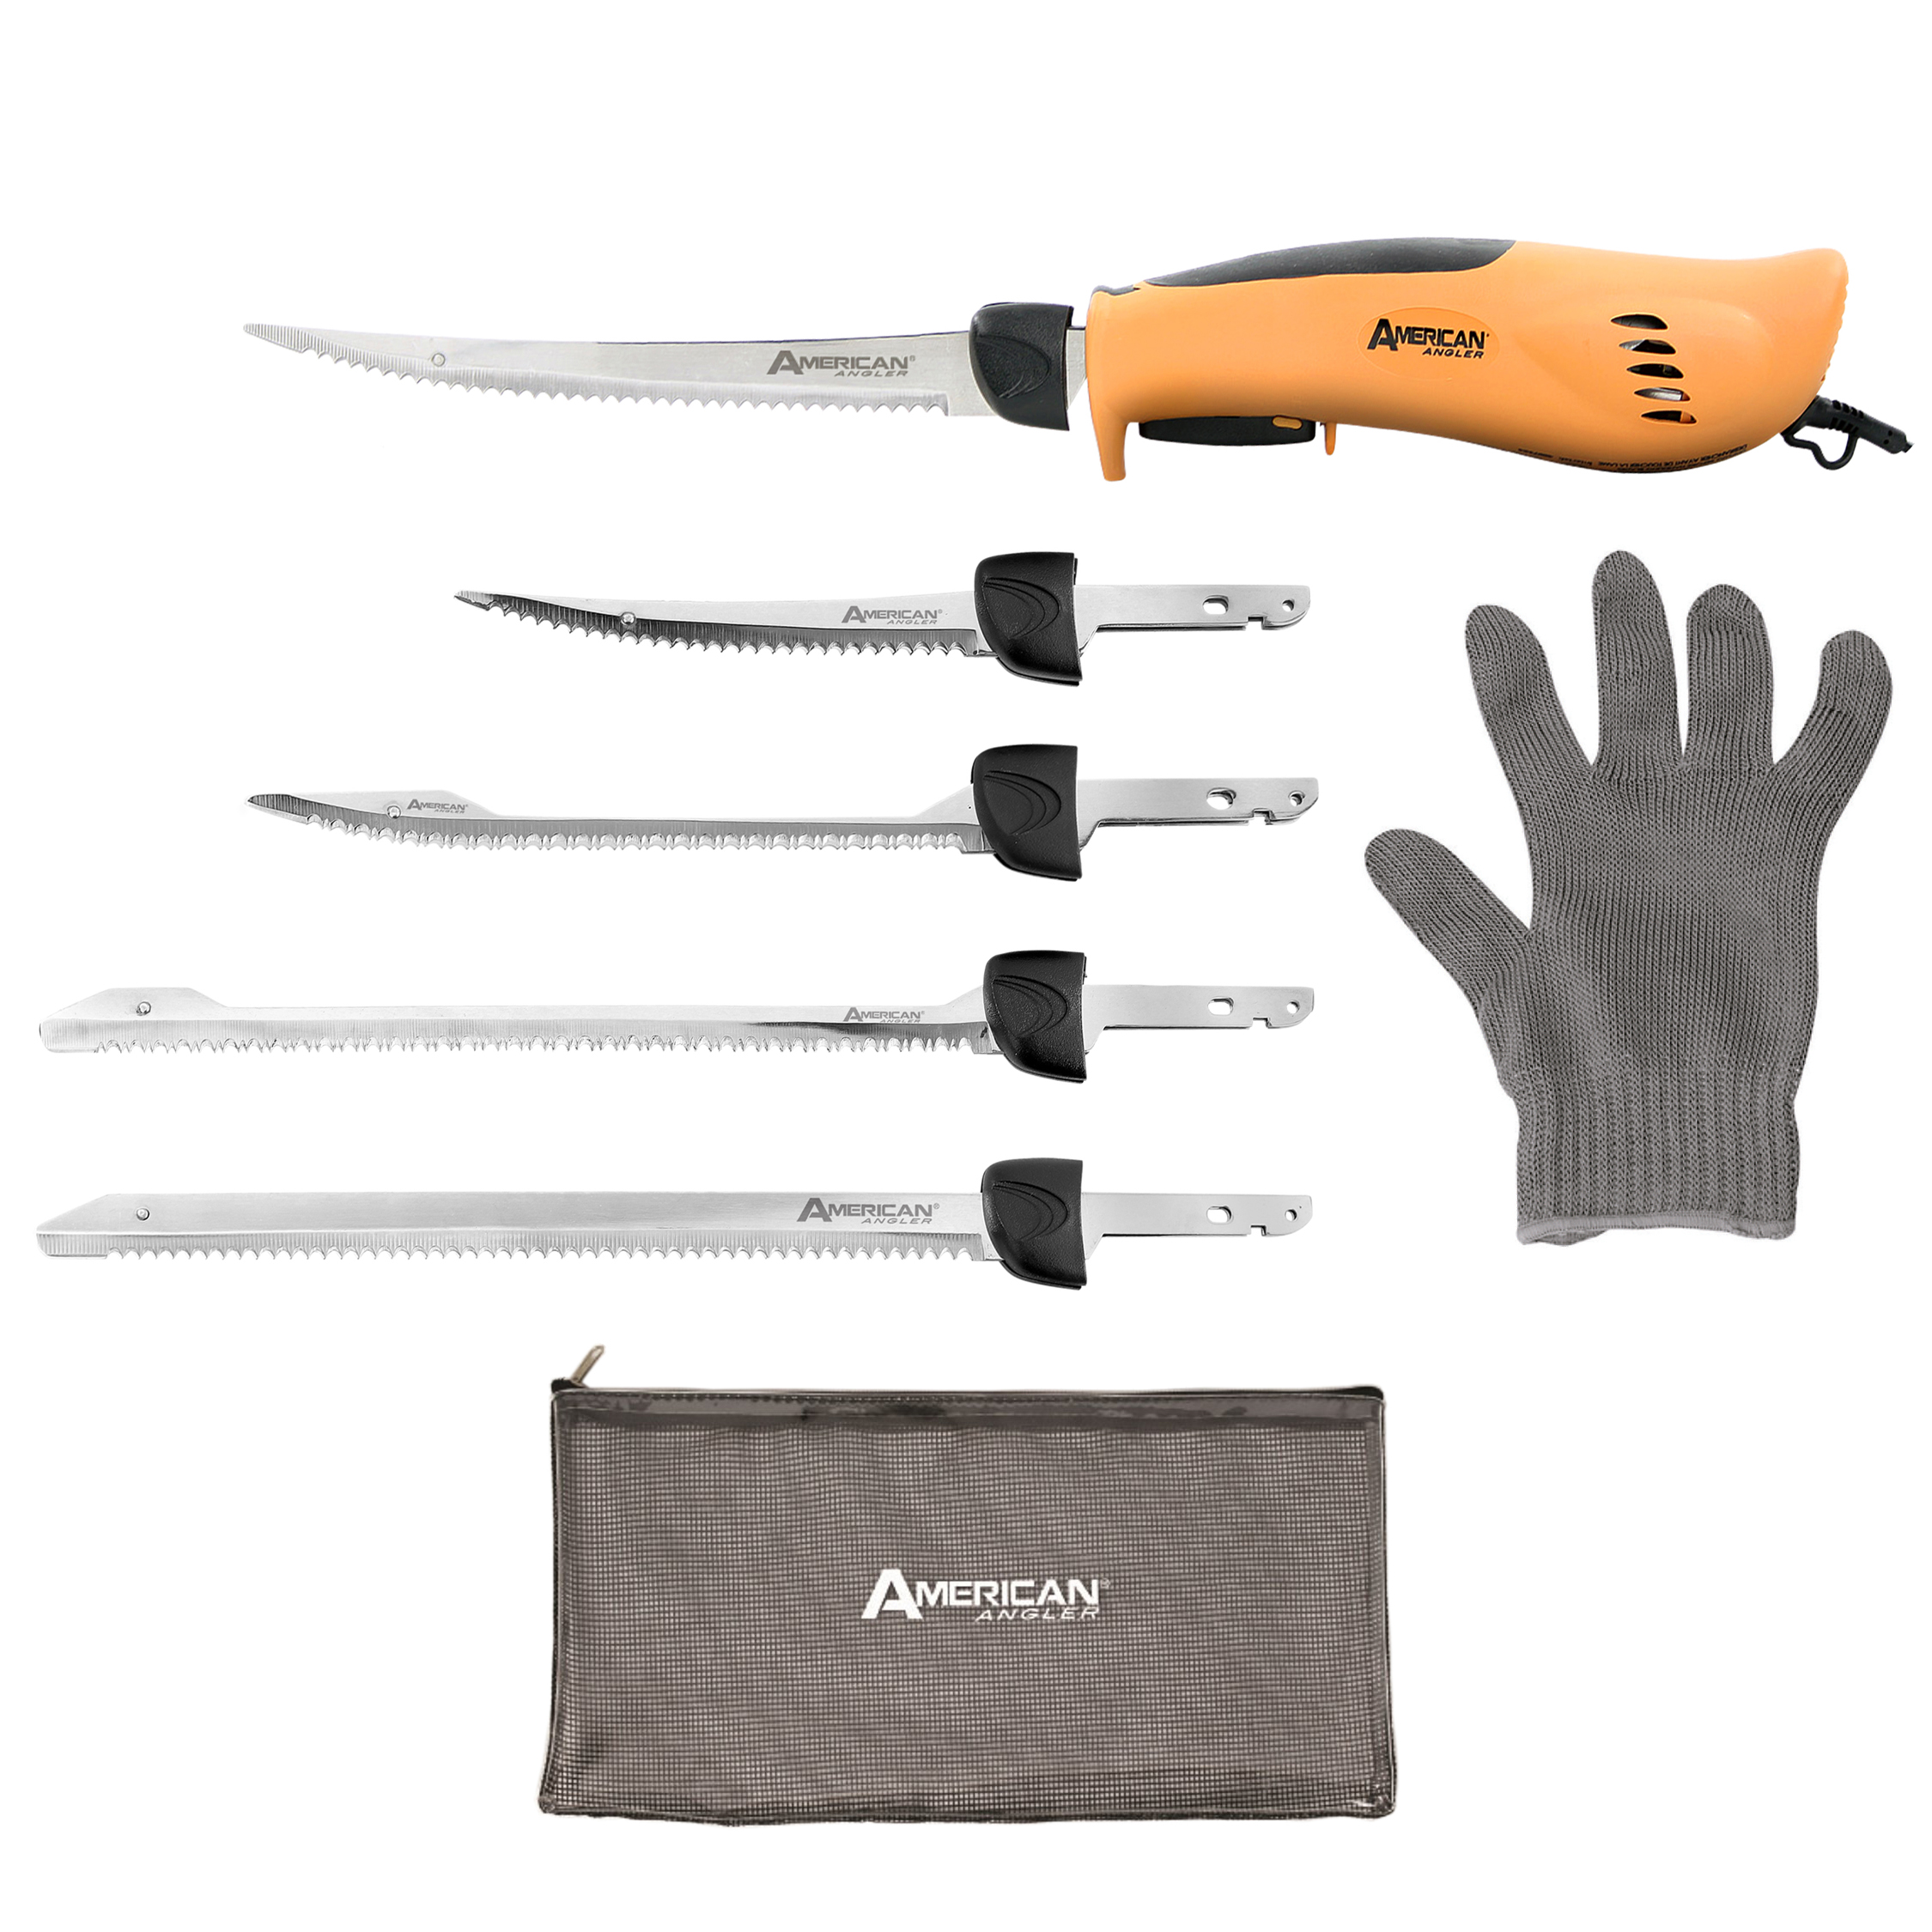 American Angler PRO Electric Fillet Knife Sportsmen's Kit � Five Blades, AEK-OB-DS-008-1 by Ginsu Brands a Scott Fetzer company